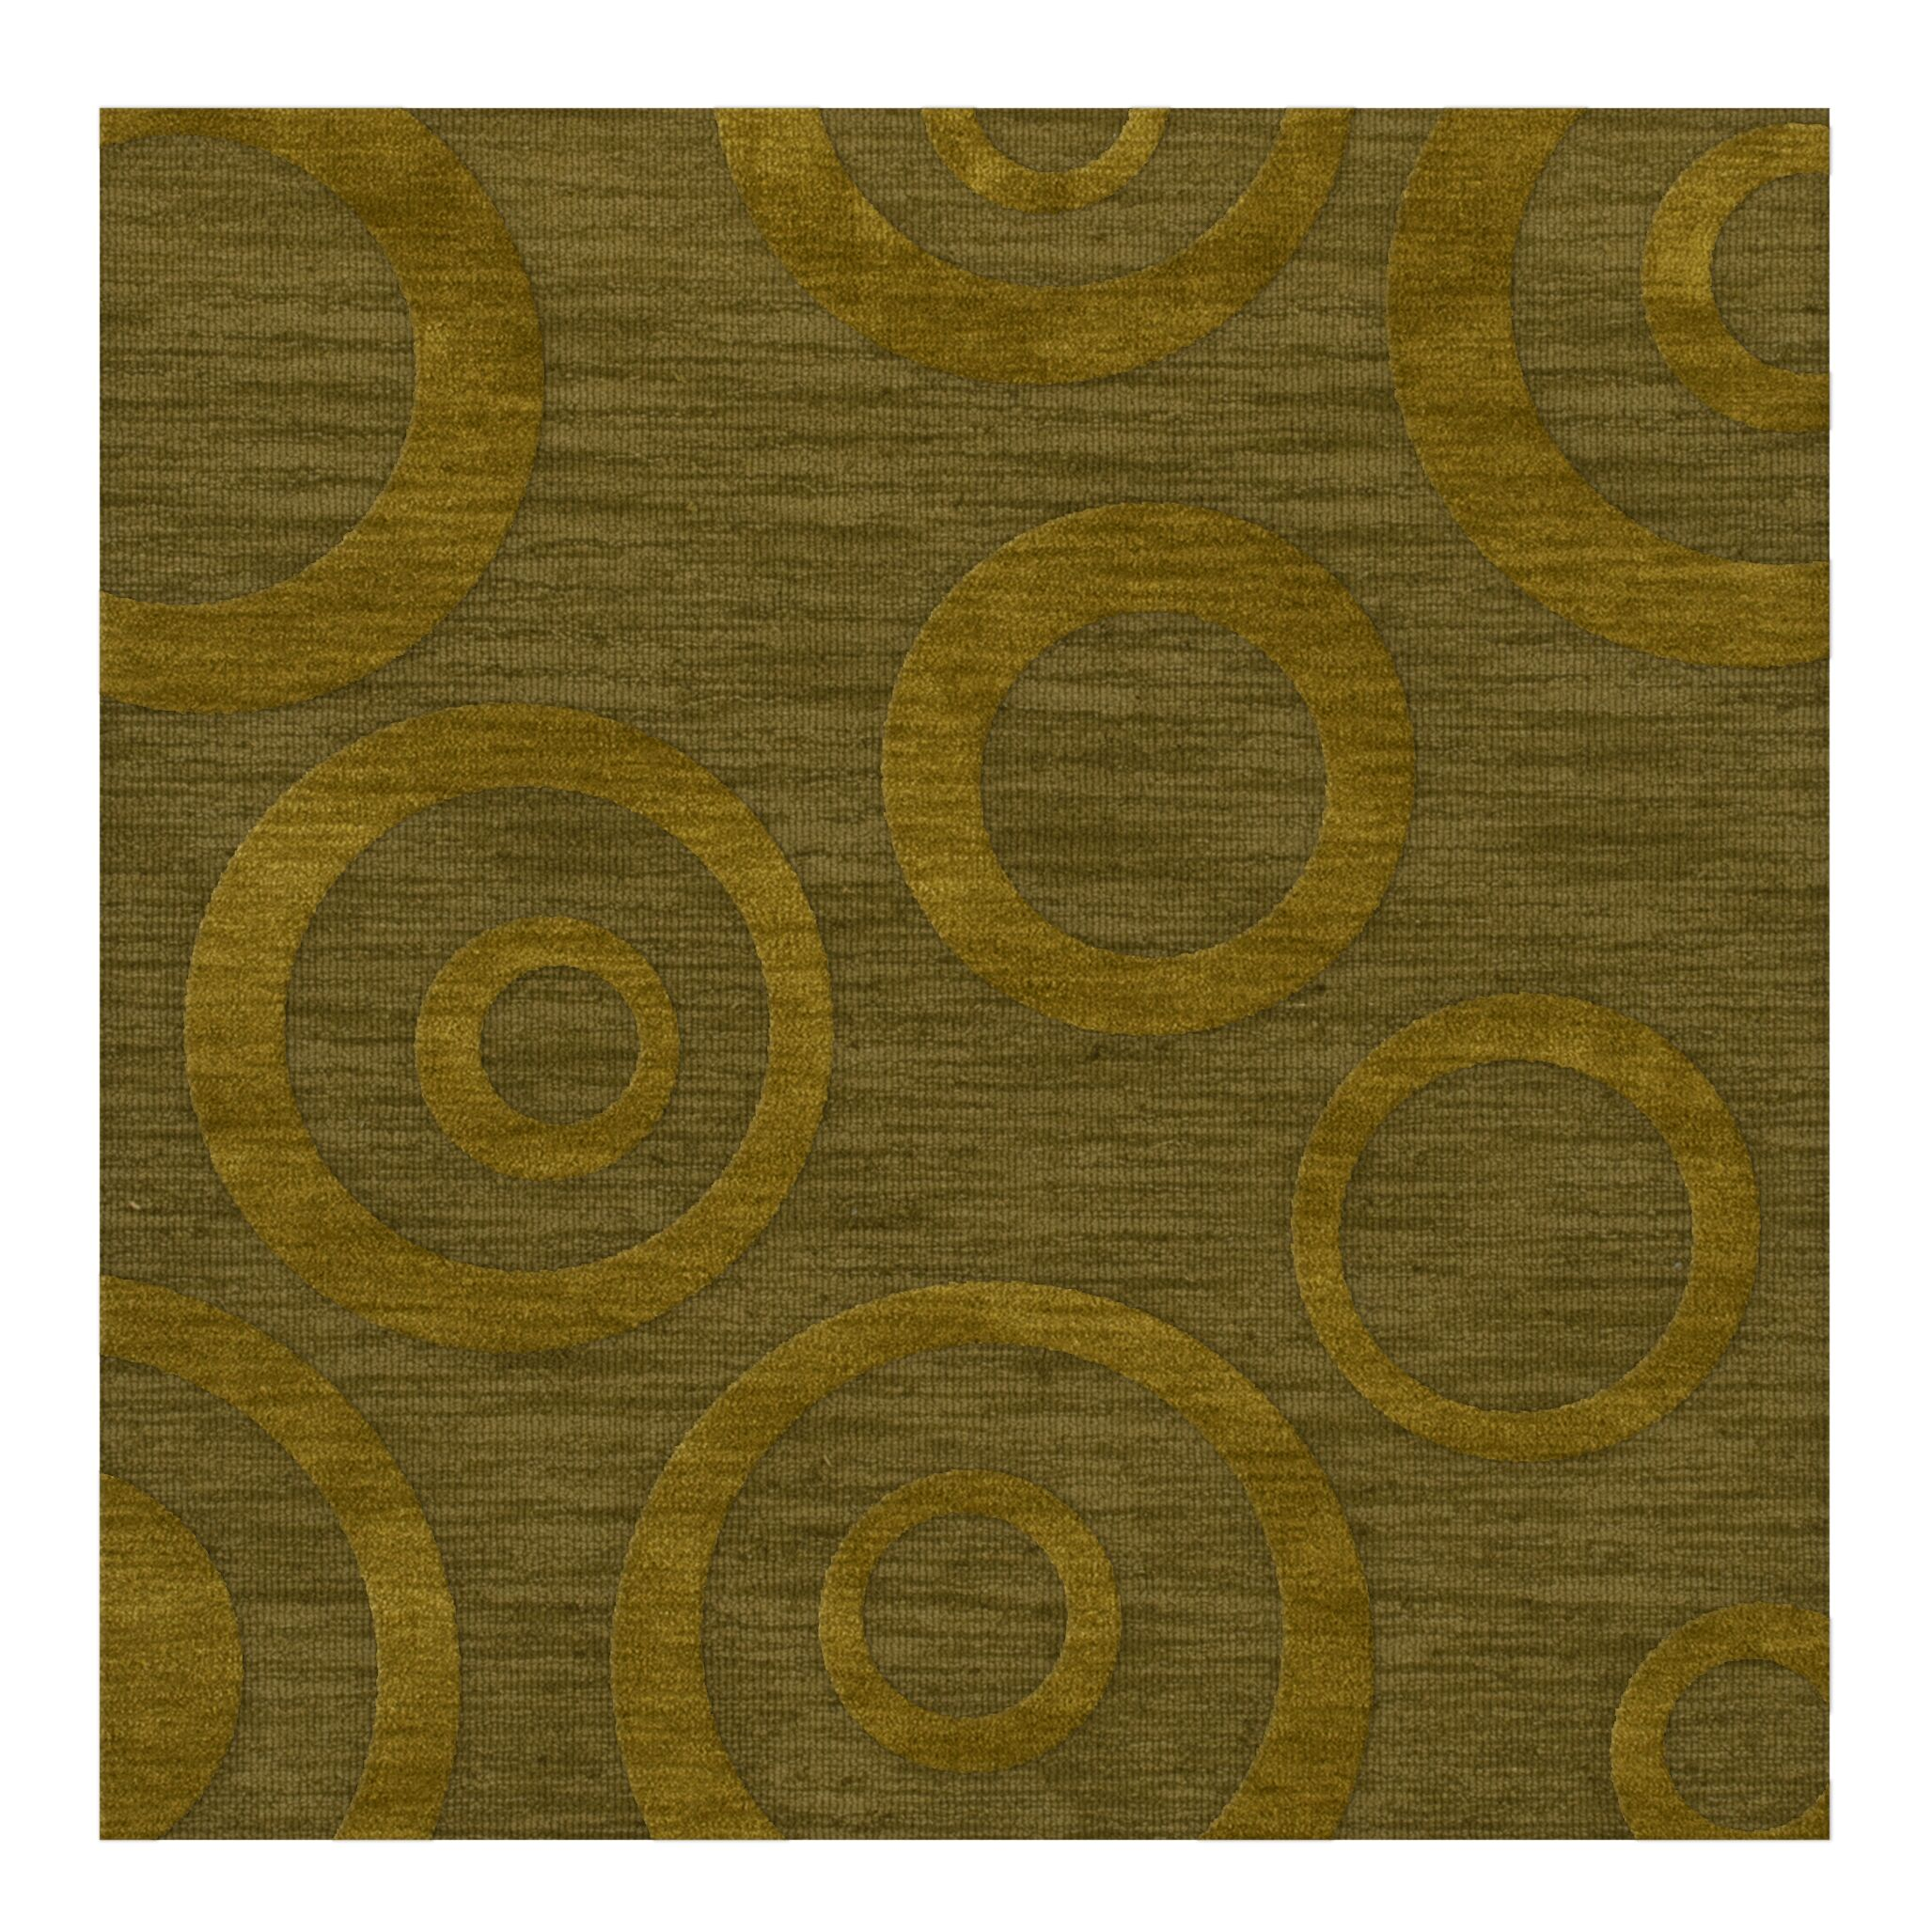 Dover Tufted Wool Avocado Area Rug Rug Size: Square 8'